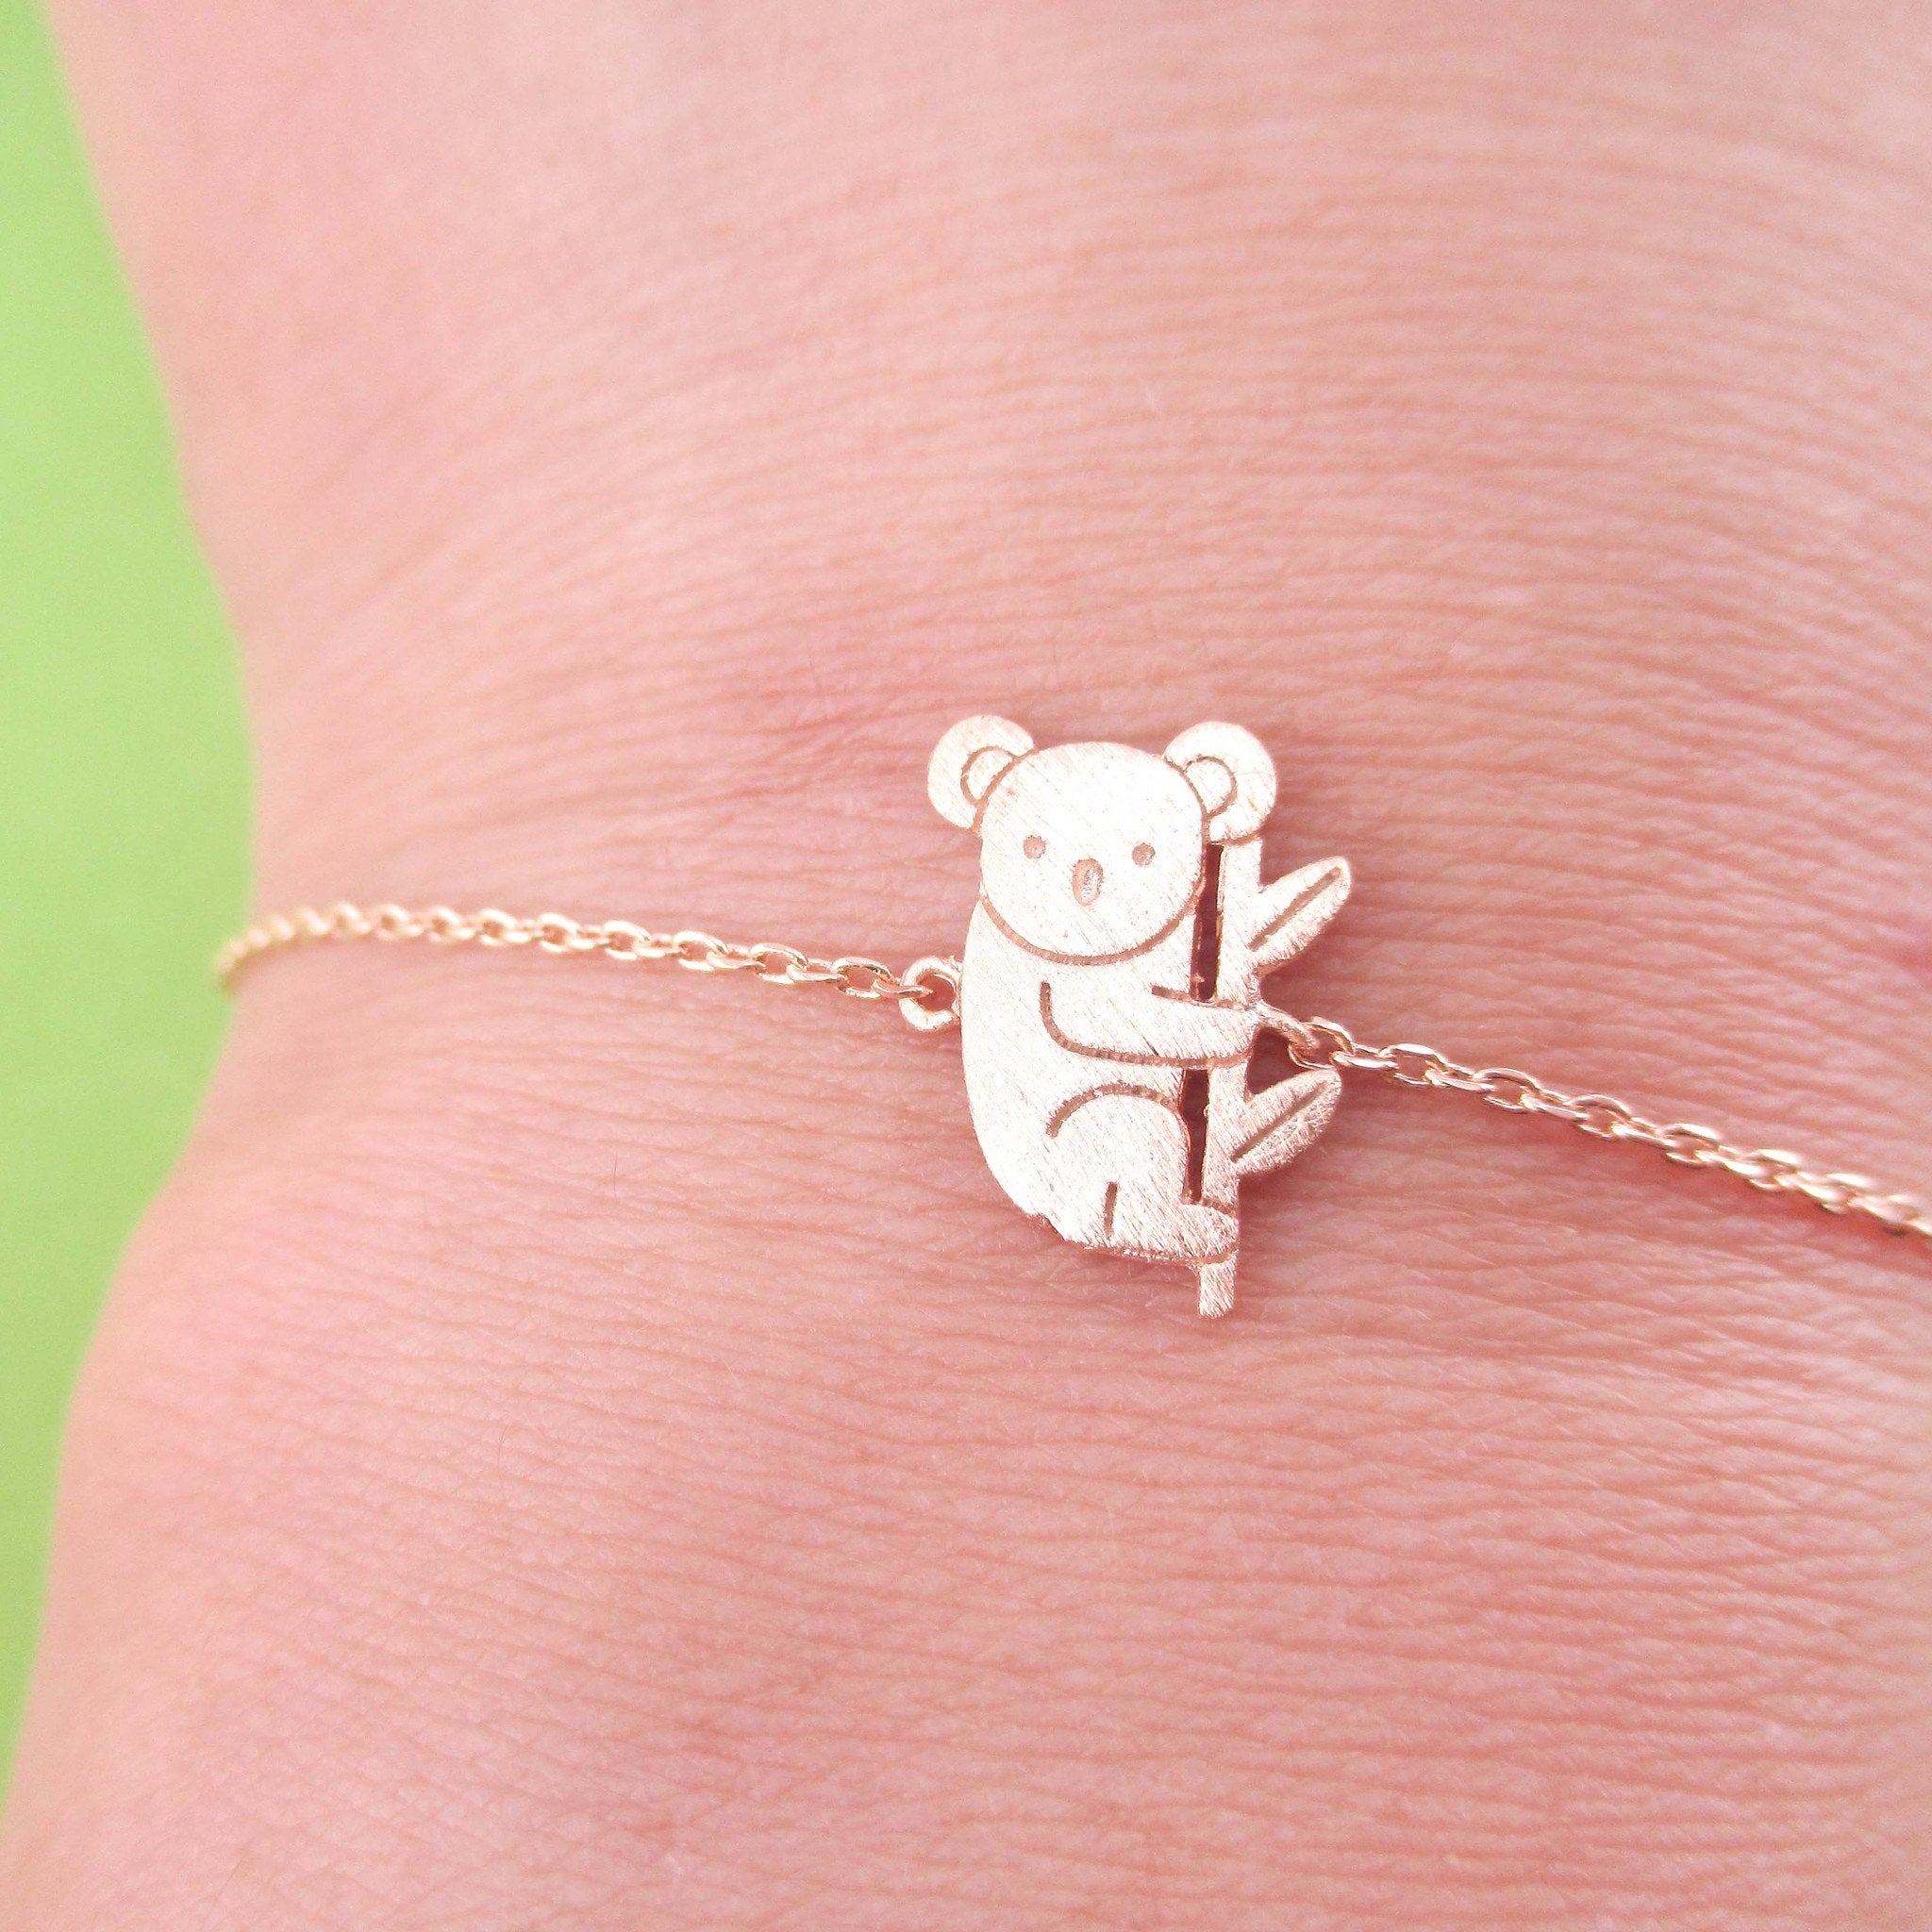 Adorable Koala Bear Shaped Silhouette Charm Bracelet in Rose Gold